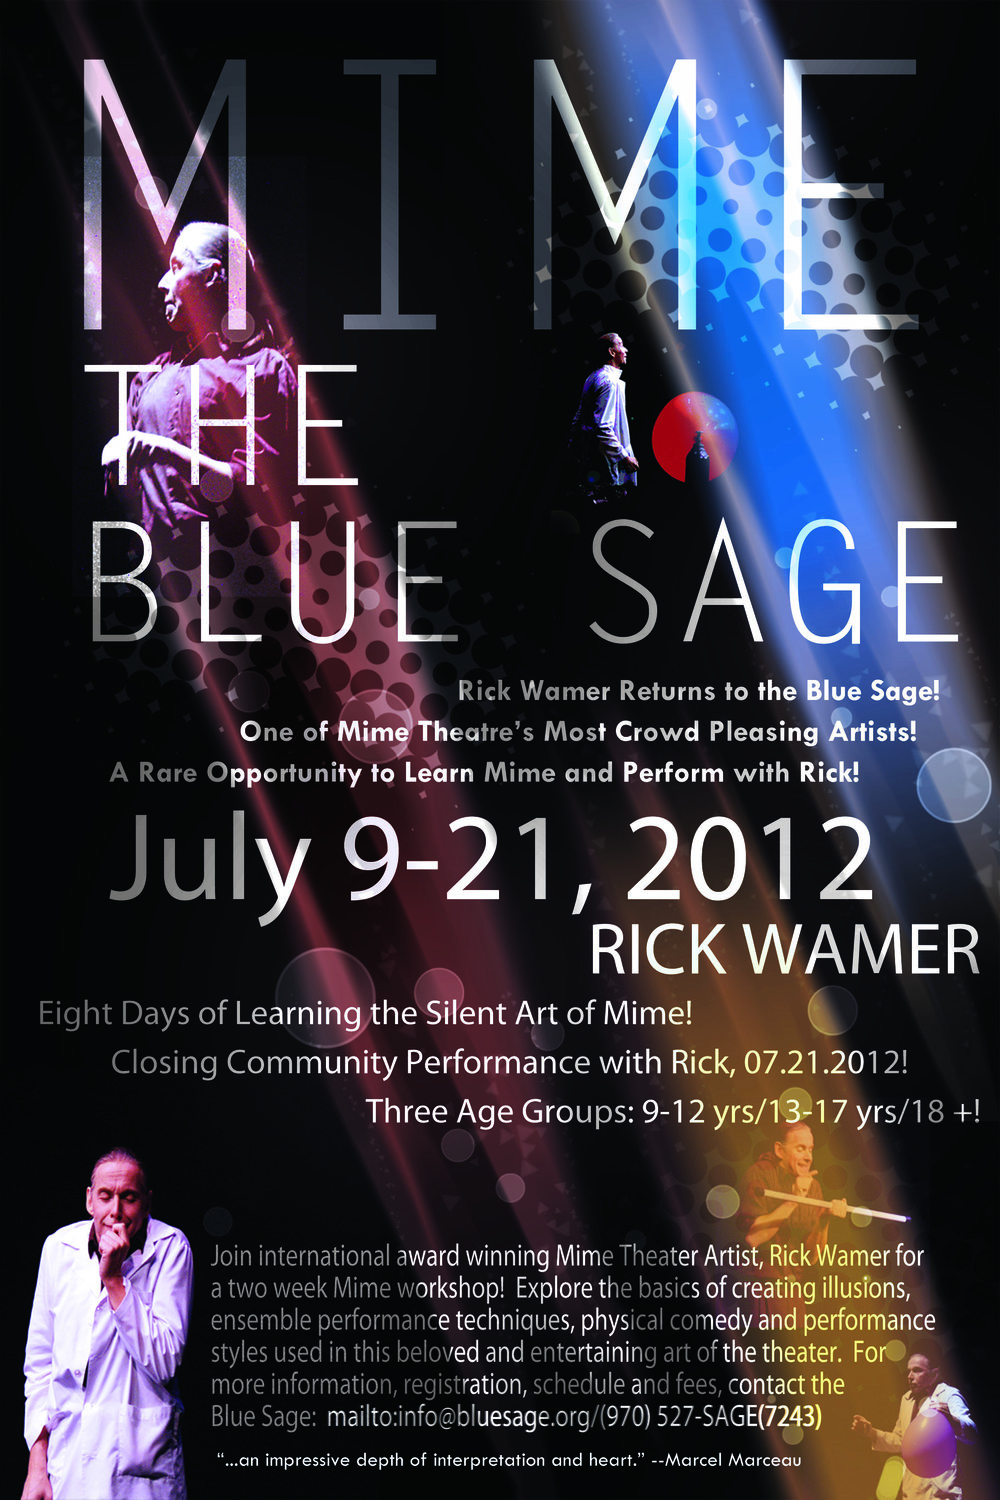 BlueSage2012 11in.jpg